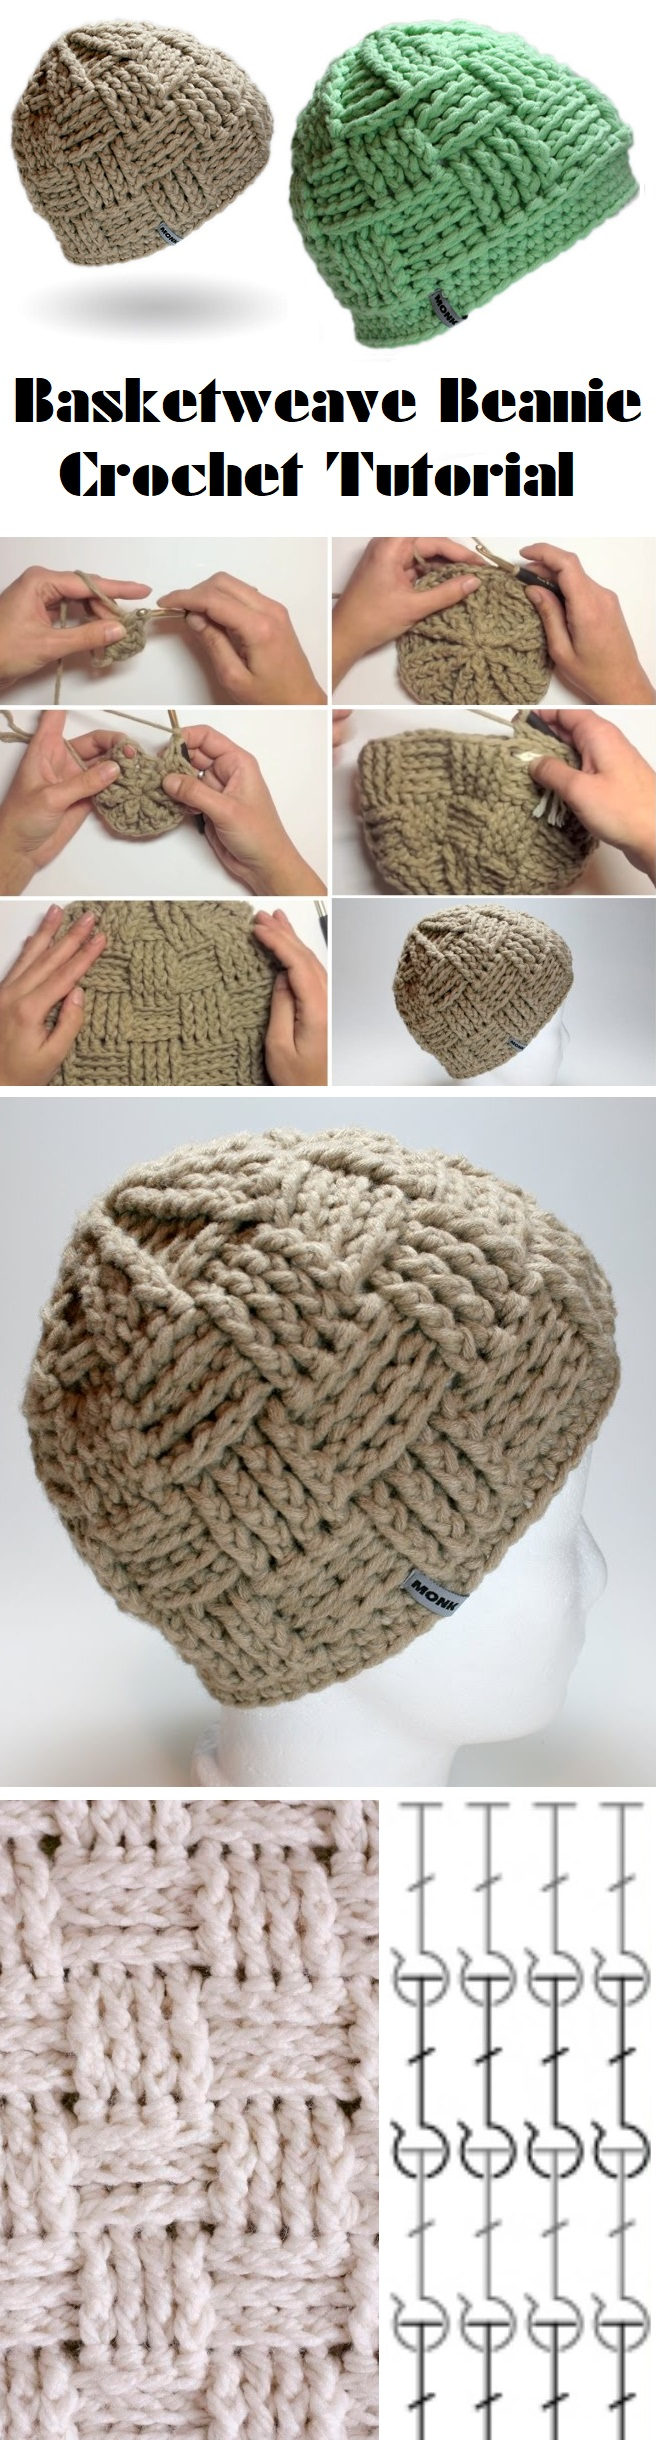 b3fe63b1f1f For Crochet Tutorial Click Here. Basketweave Beanie Tutorial